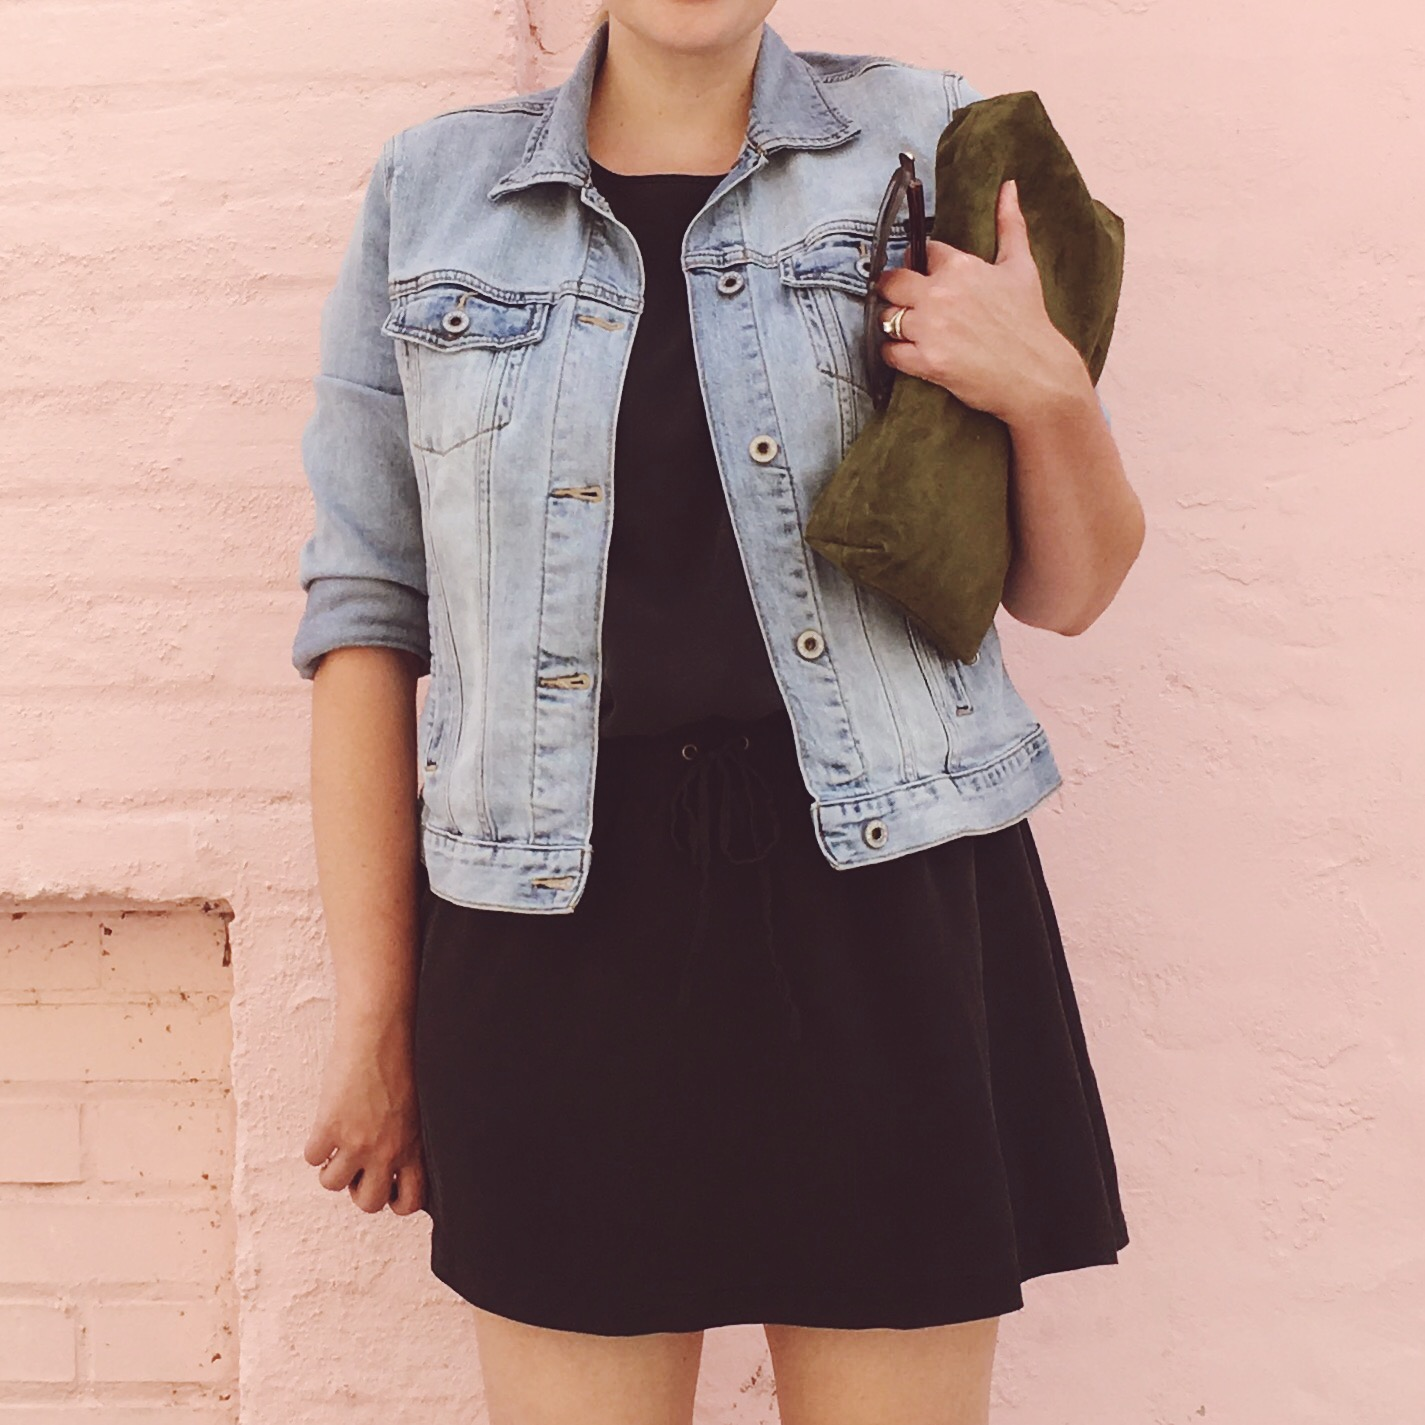 Summer Capsule Wardrobe 2016 | J.Crew silk dress with Lucky Brand denim jacket and Jessica Simpson blue suede heels | keiralennox.com